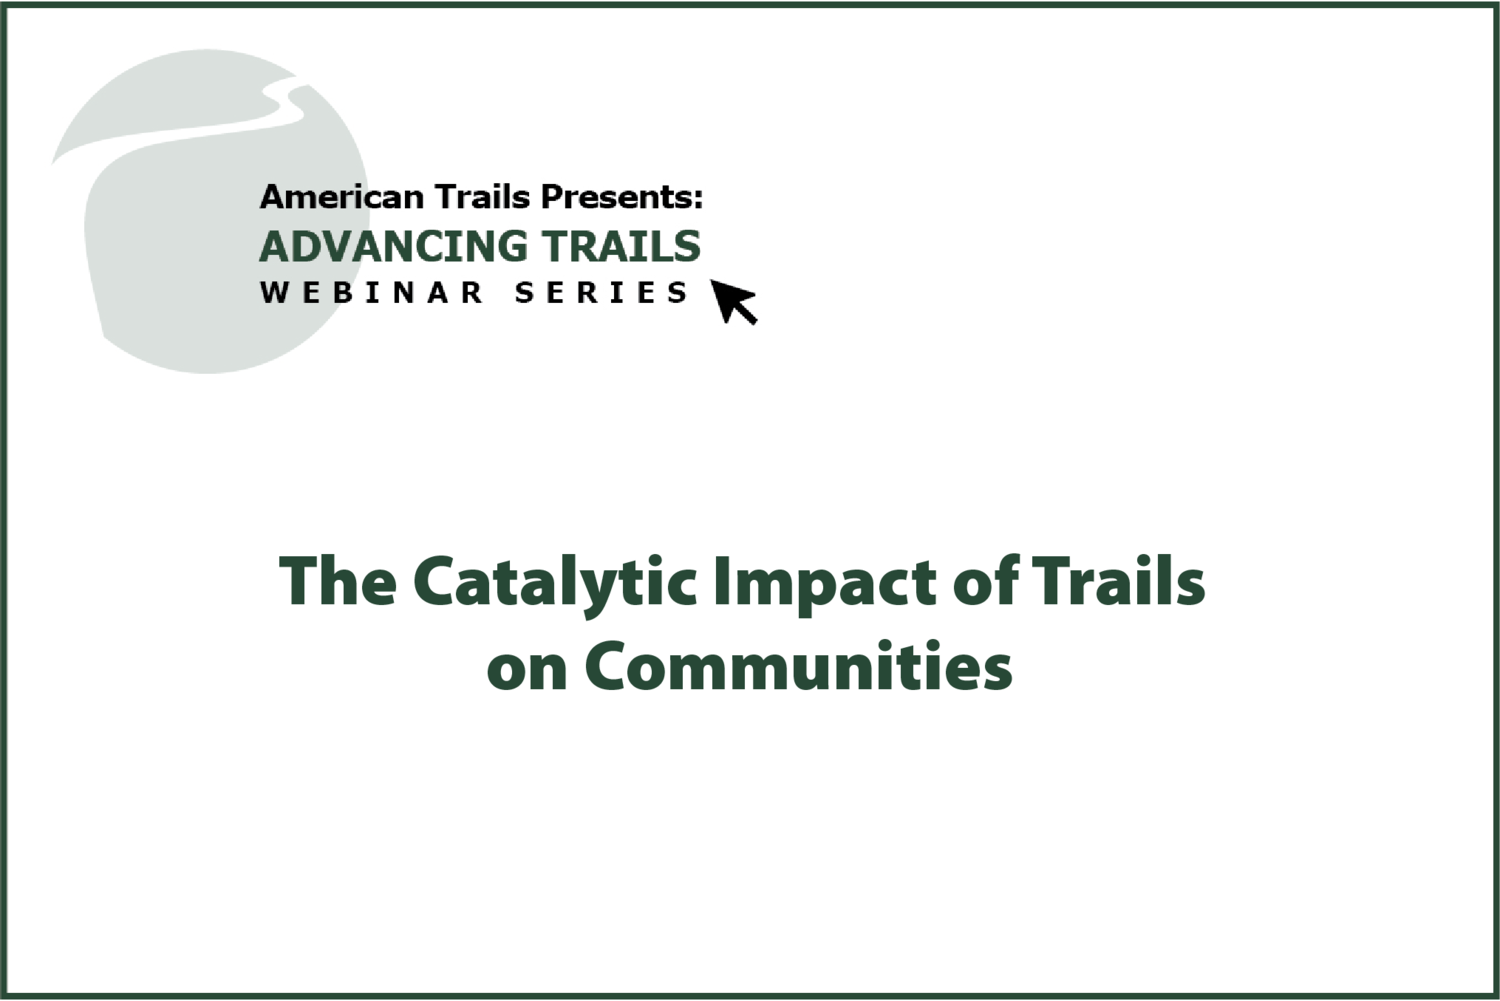 The Catalytic Impact of Trails on Communities (August 27, 2020)